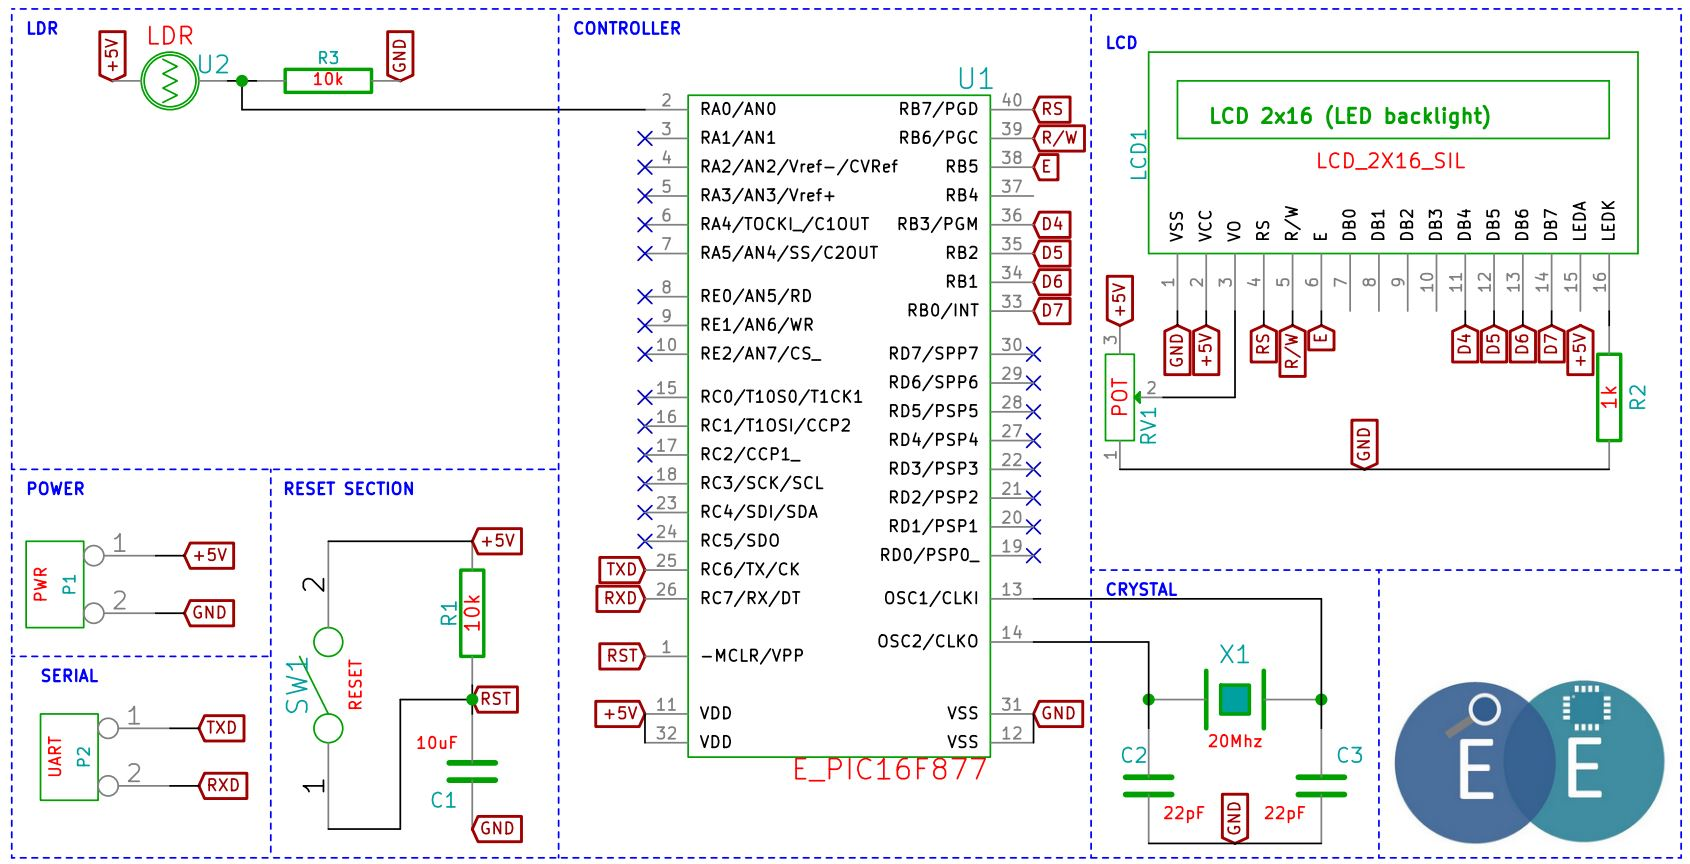 Interfacing Adc To 8051 Fileschematic Pic Lightldr Tutorials